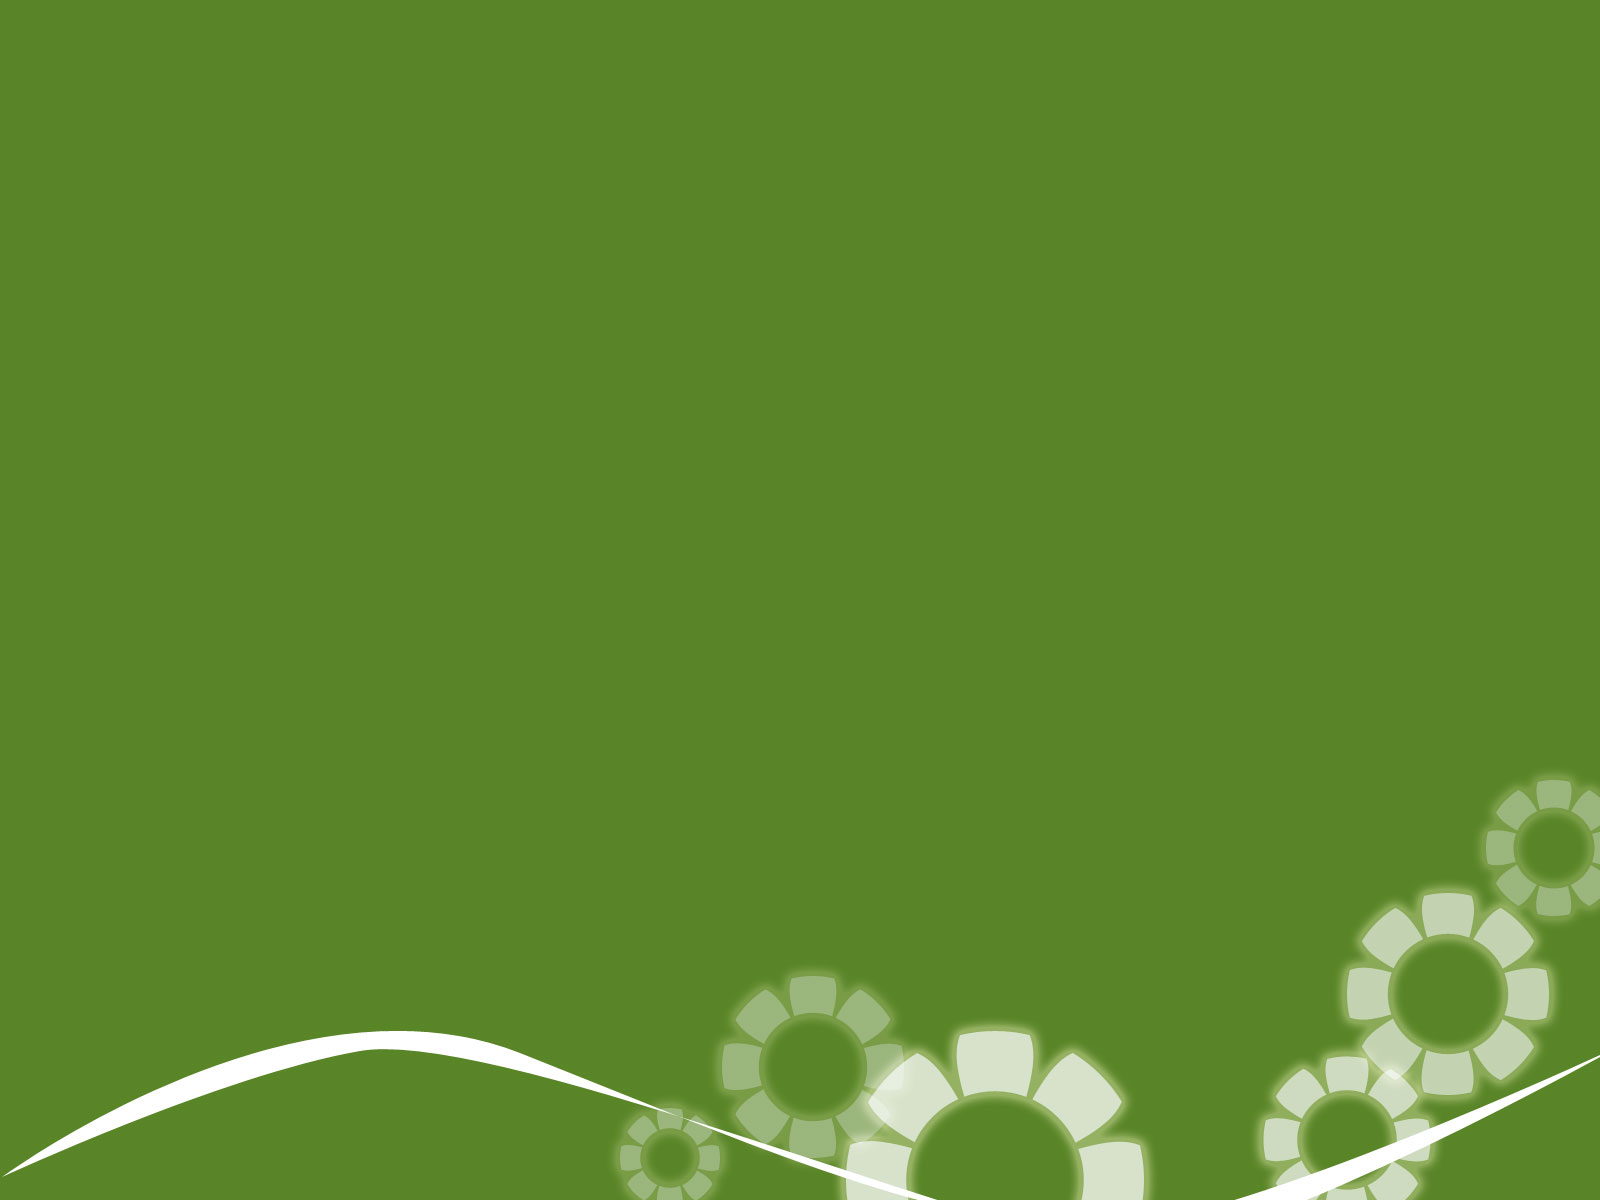 Green background clipart #1